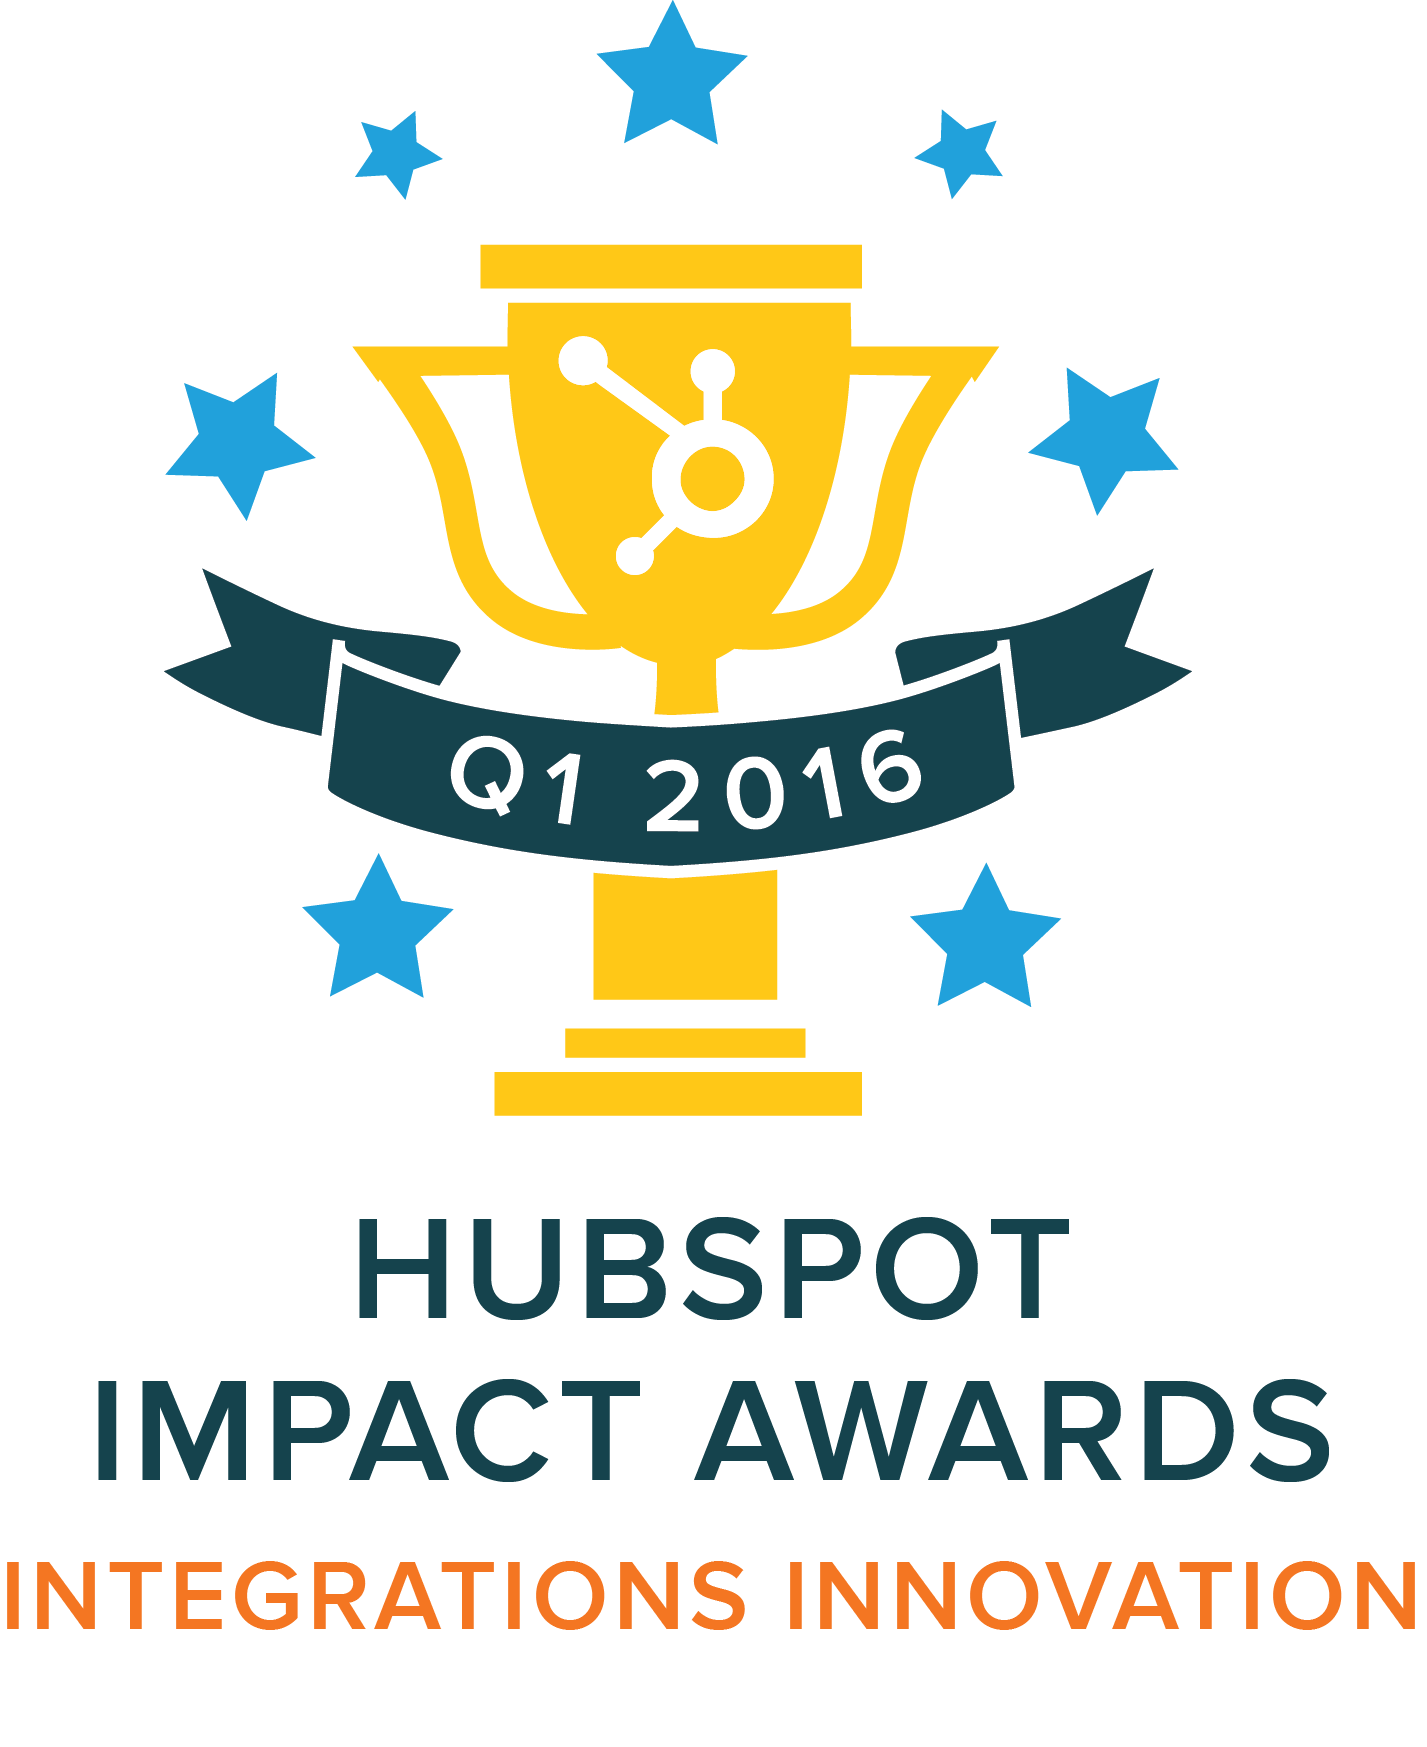 hubspot-integration-innovation